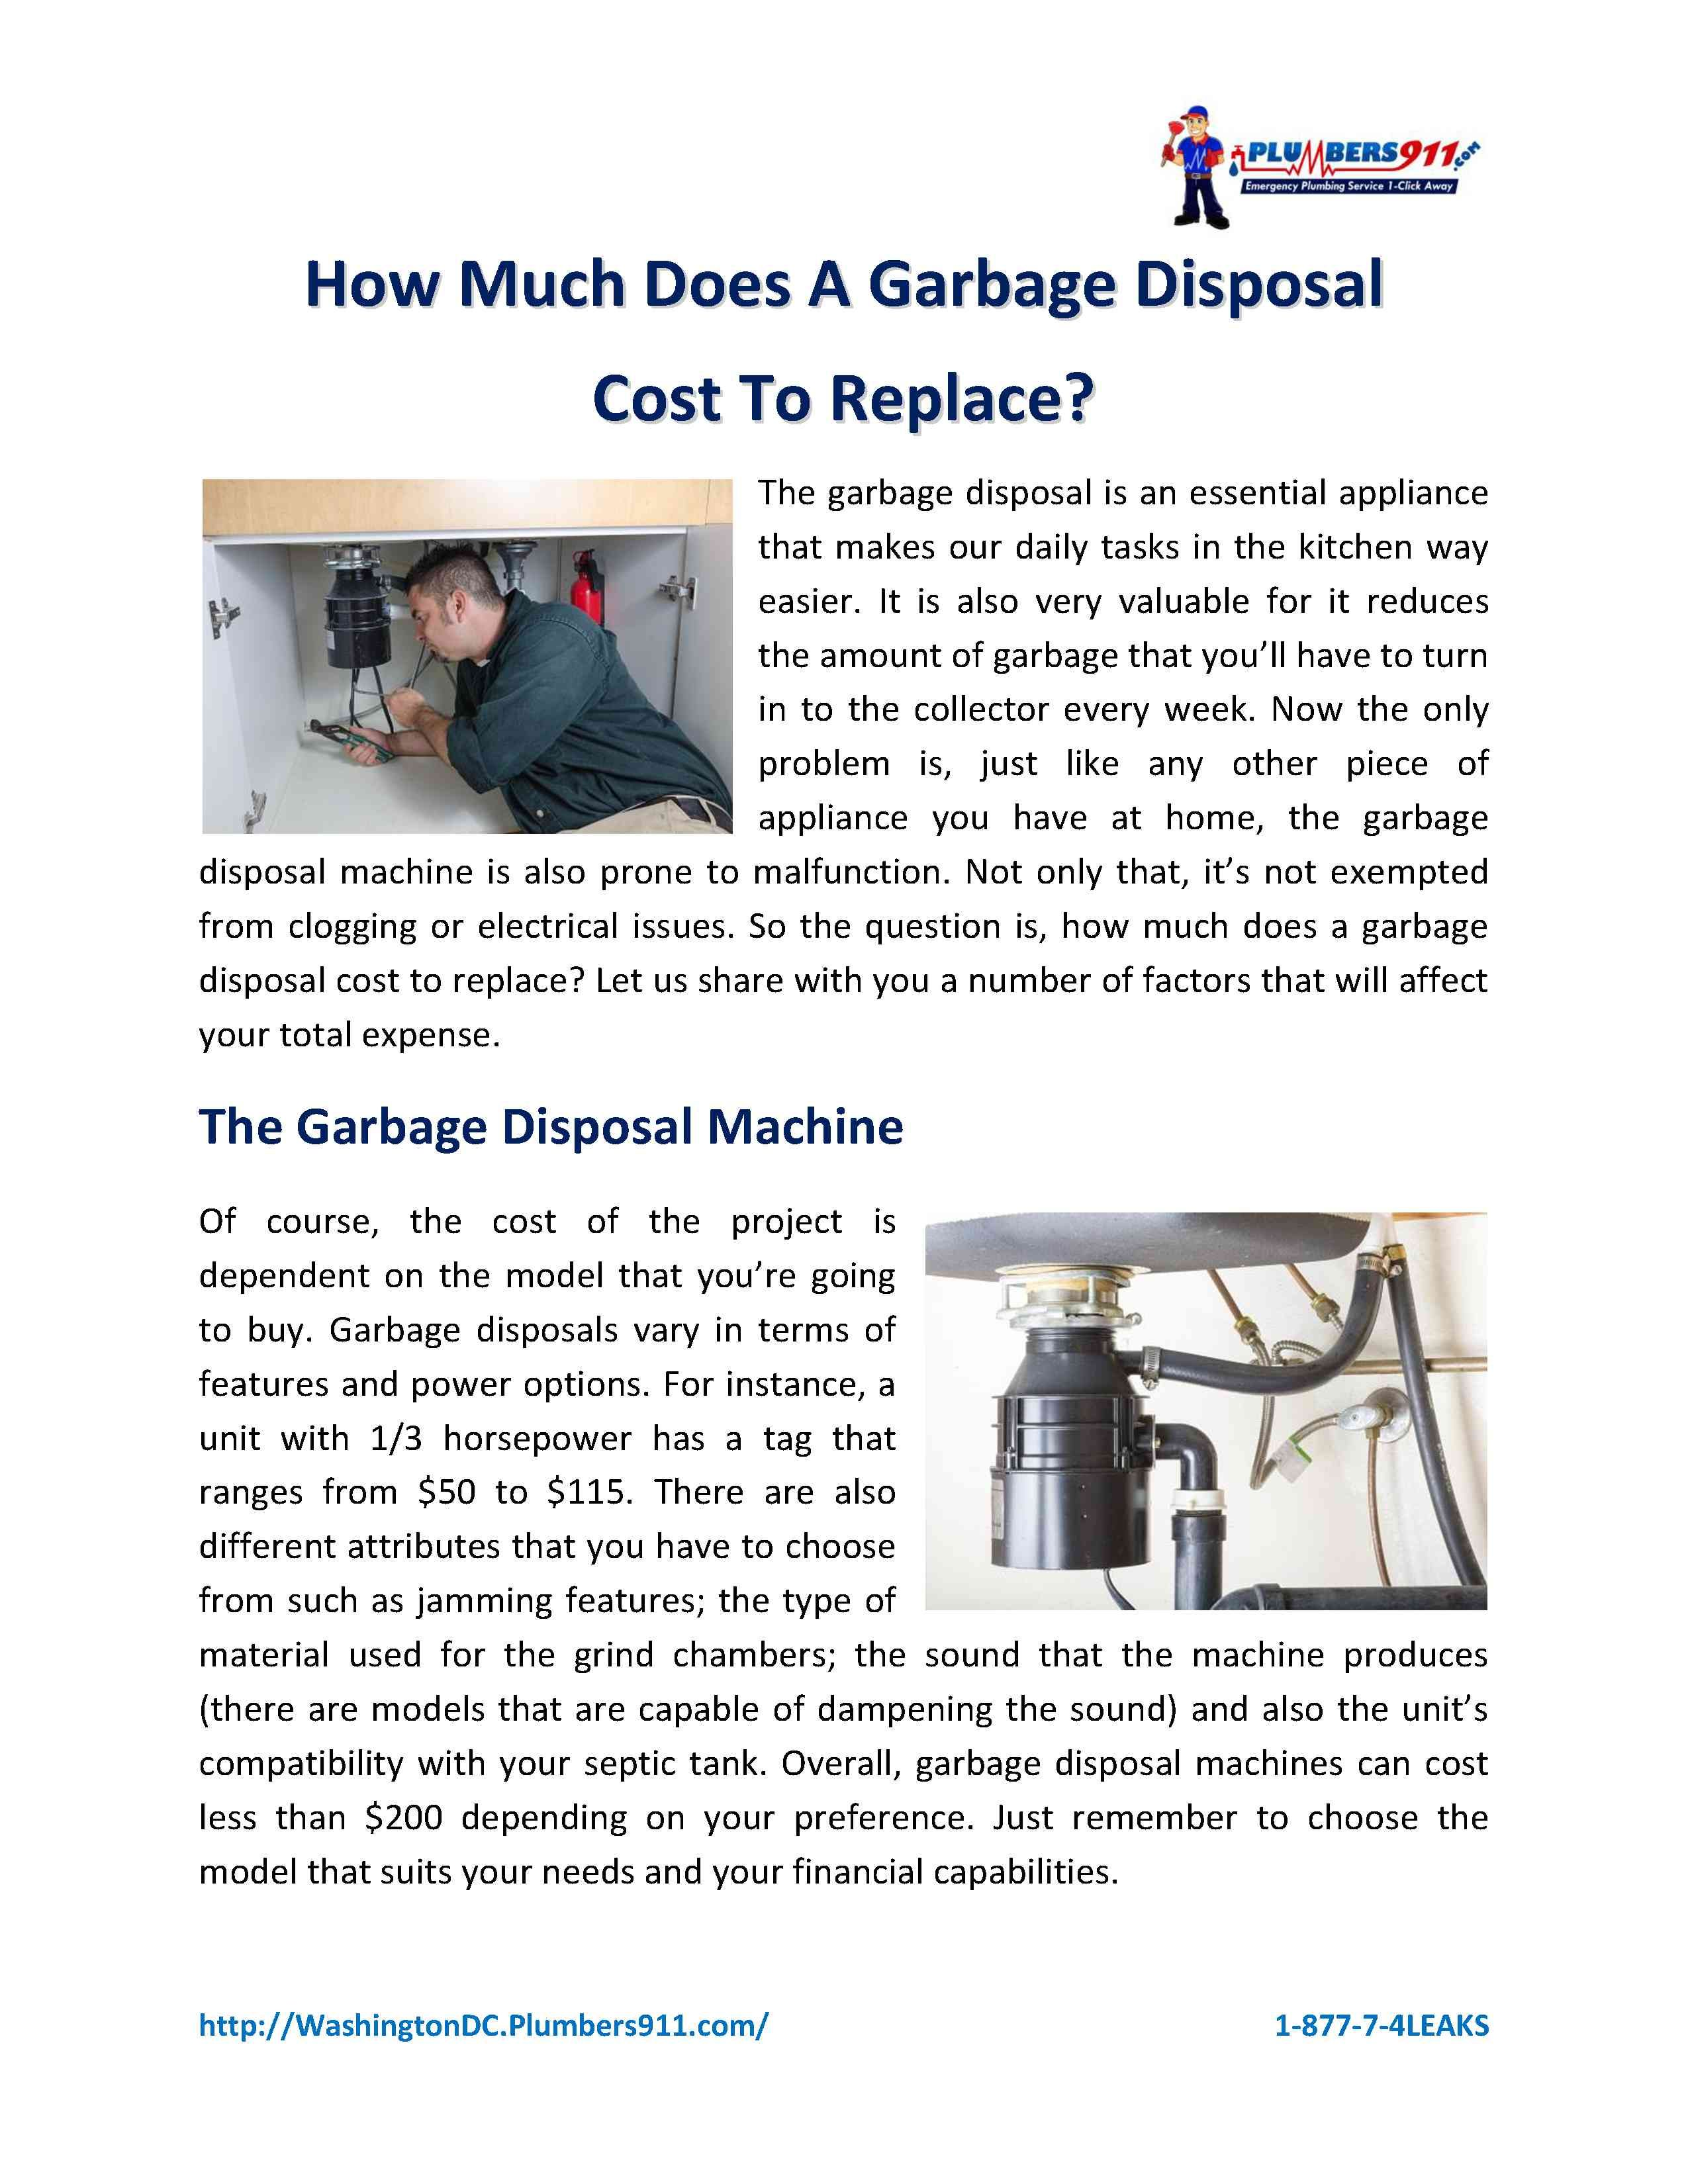 Do You Need A New Garbage Disposal Read Our Pdf Guide On How Much